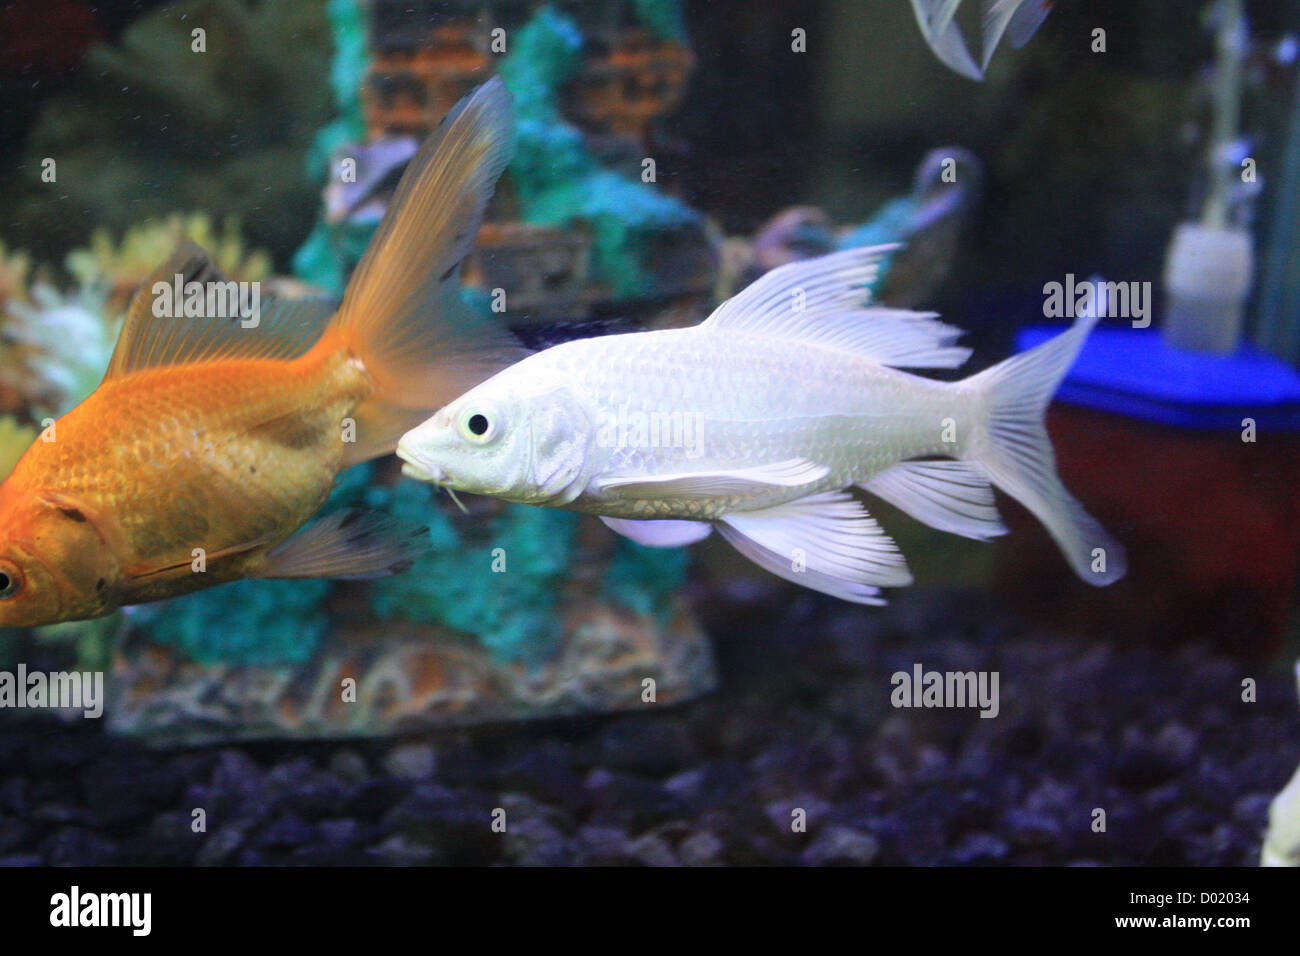 Freshwater aquarium fish tank pictures - Freshwater Fish Aquarium Fish Tropical Fish Pictures Of Fish Fish Tanks Fish For Sale All About Fish Salt Water Fish Che